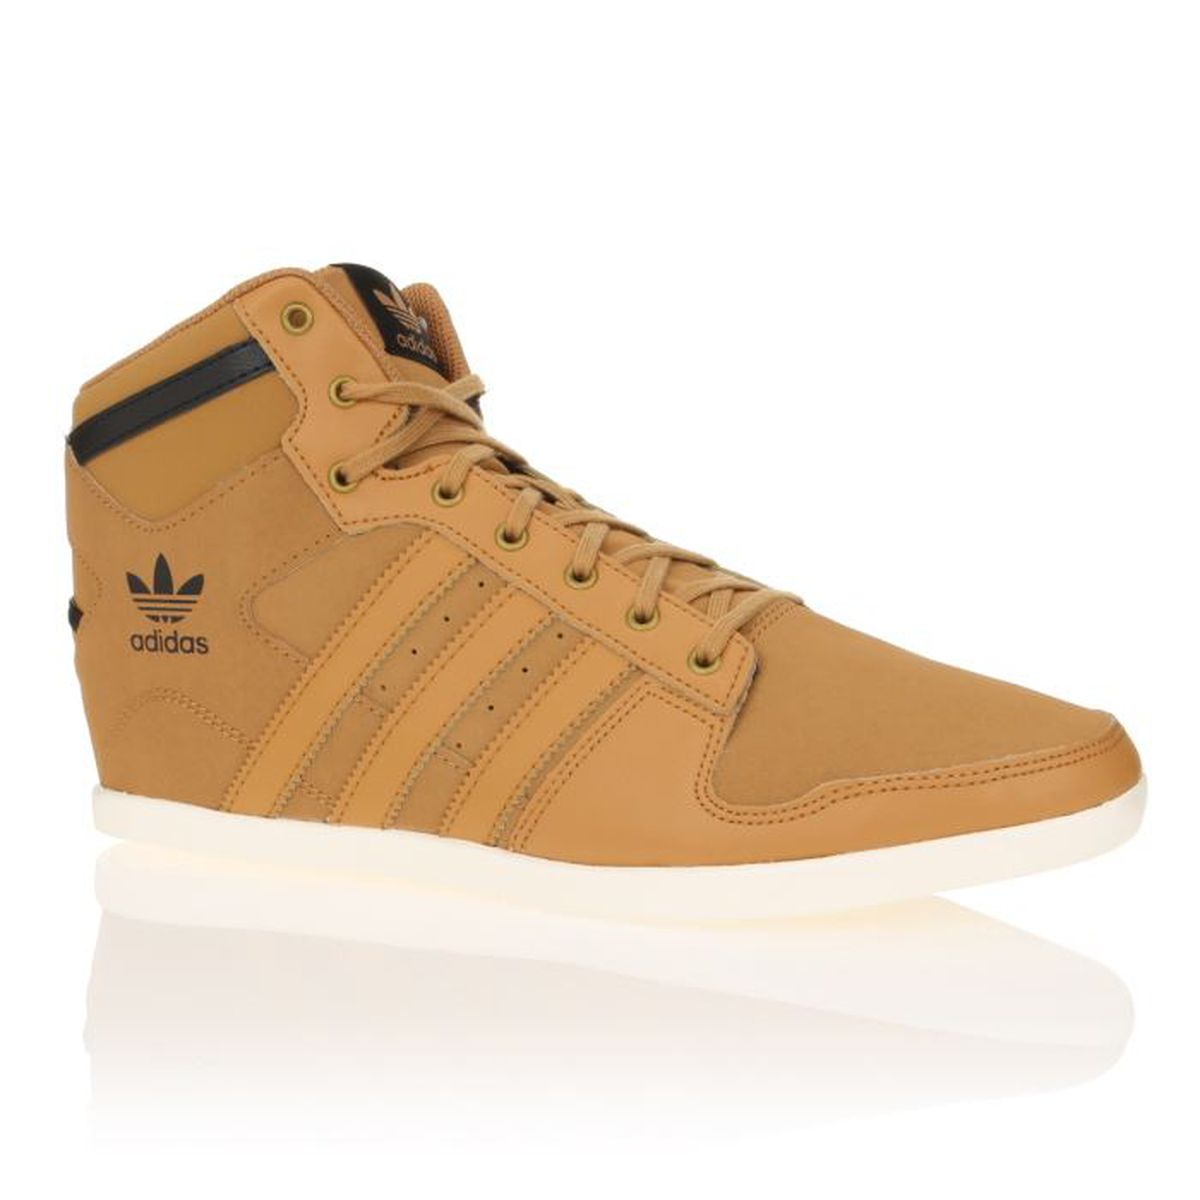 chaussure adidas camel